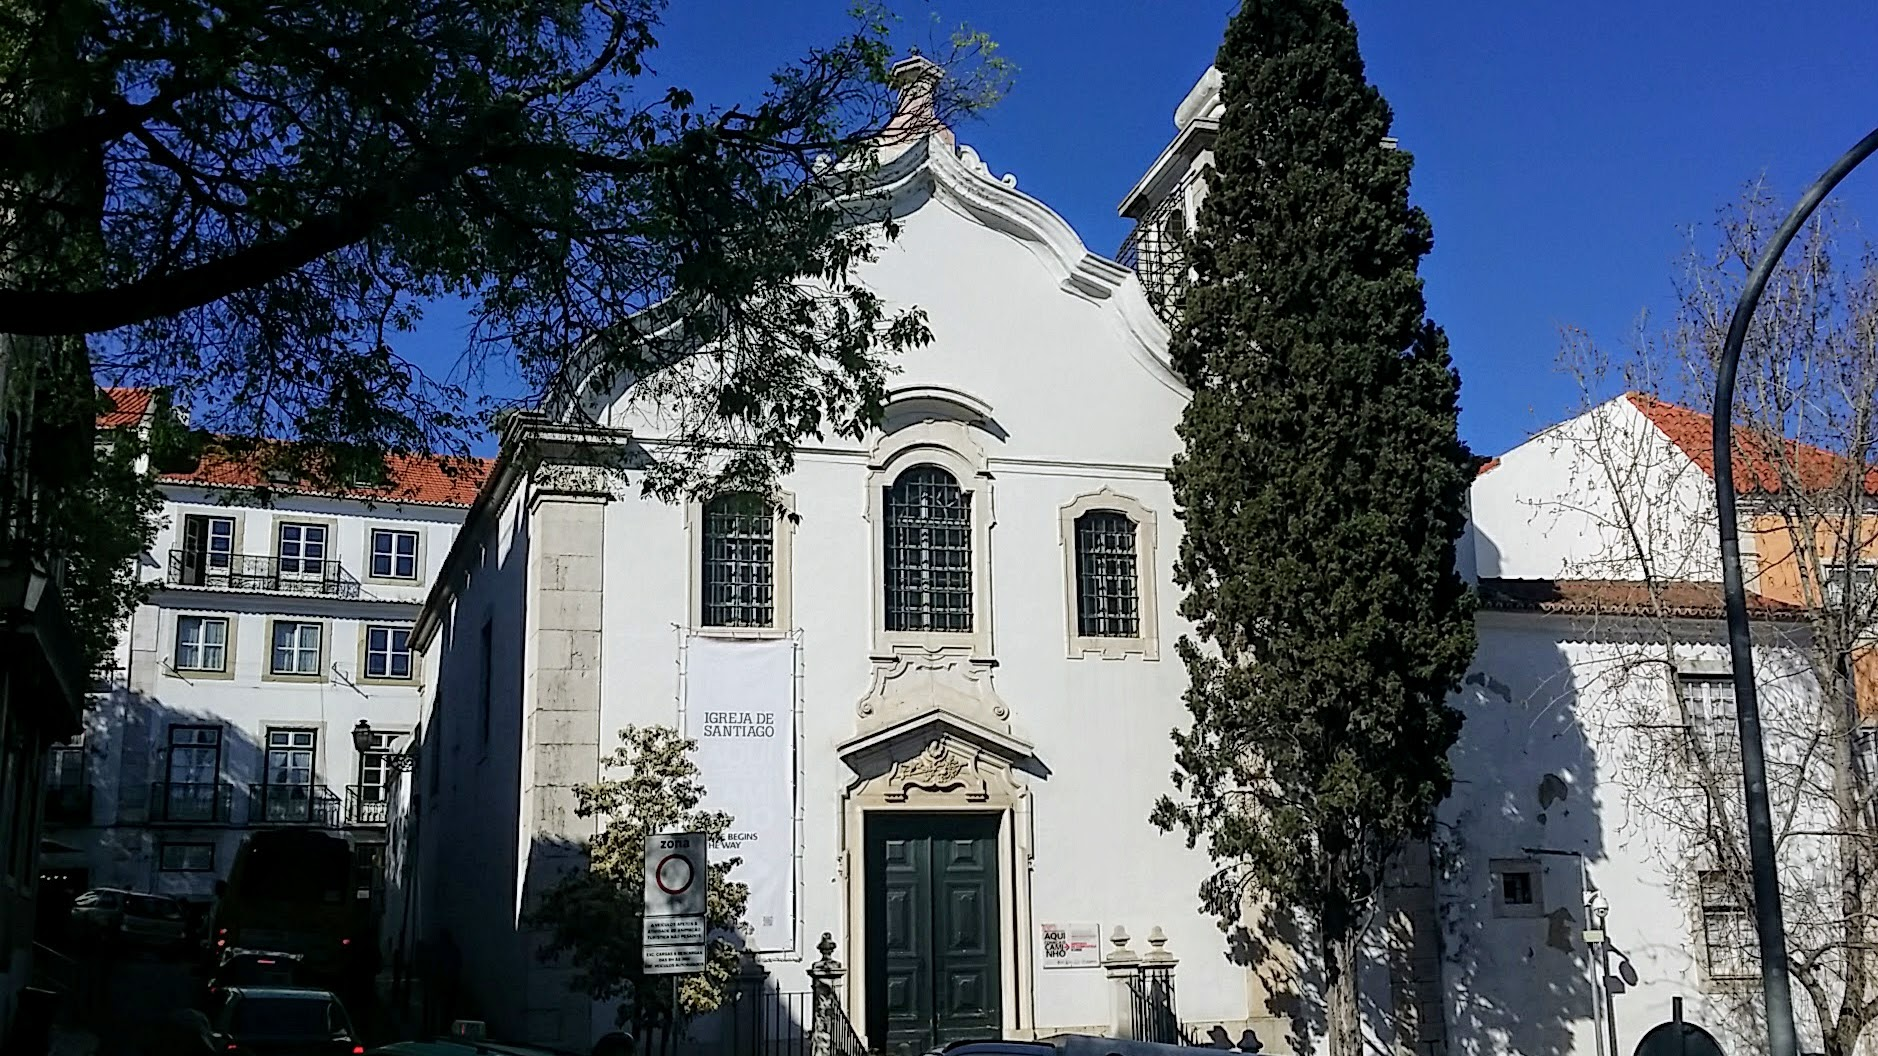 Igreja de Santiago, Lisbon Portugal, official start of the Camino Portugués